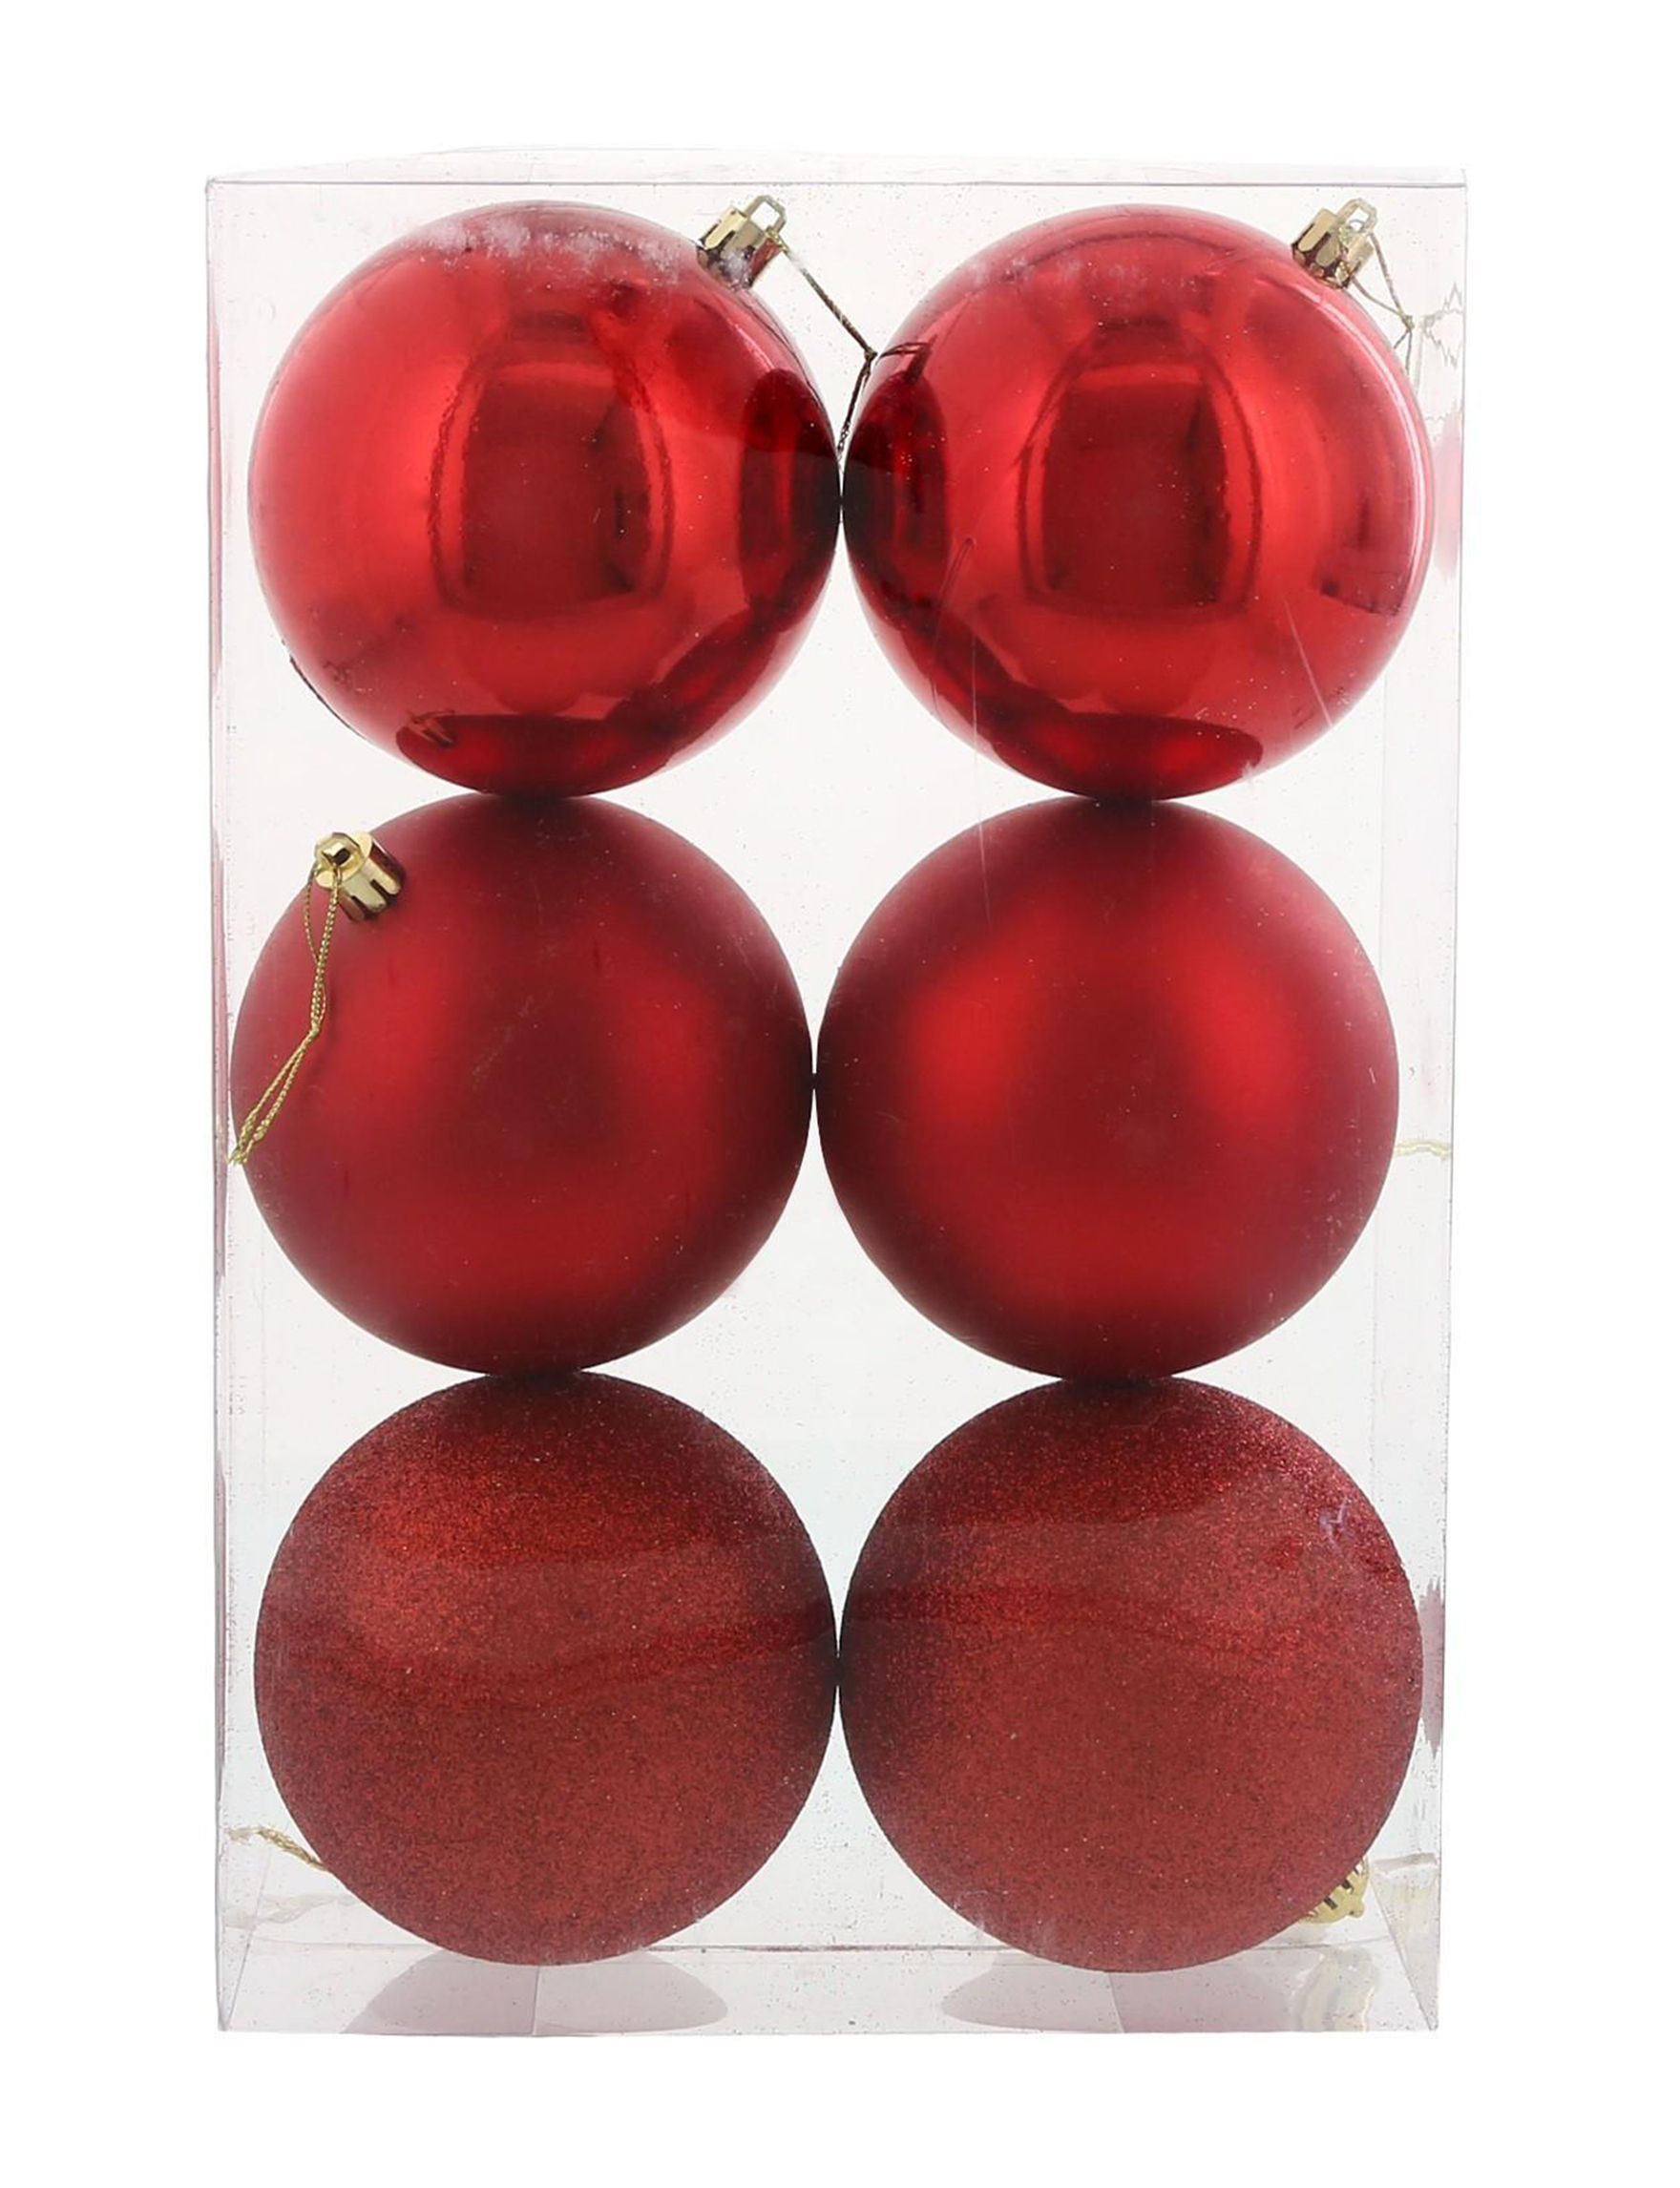 BuySeasons Red Decorative Objects Ornaments Holiday Decor